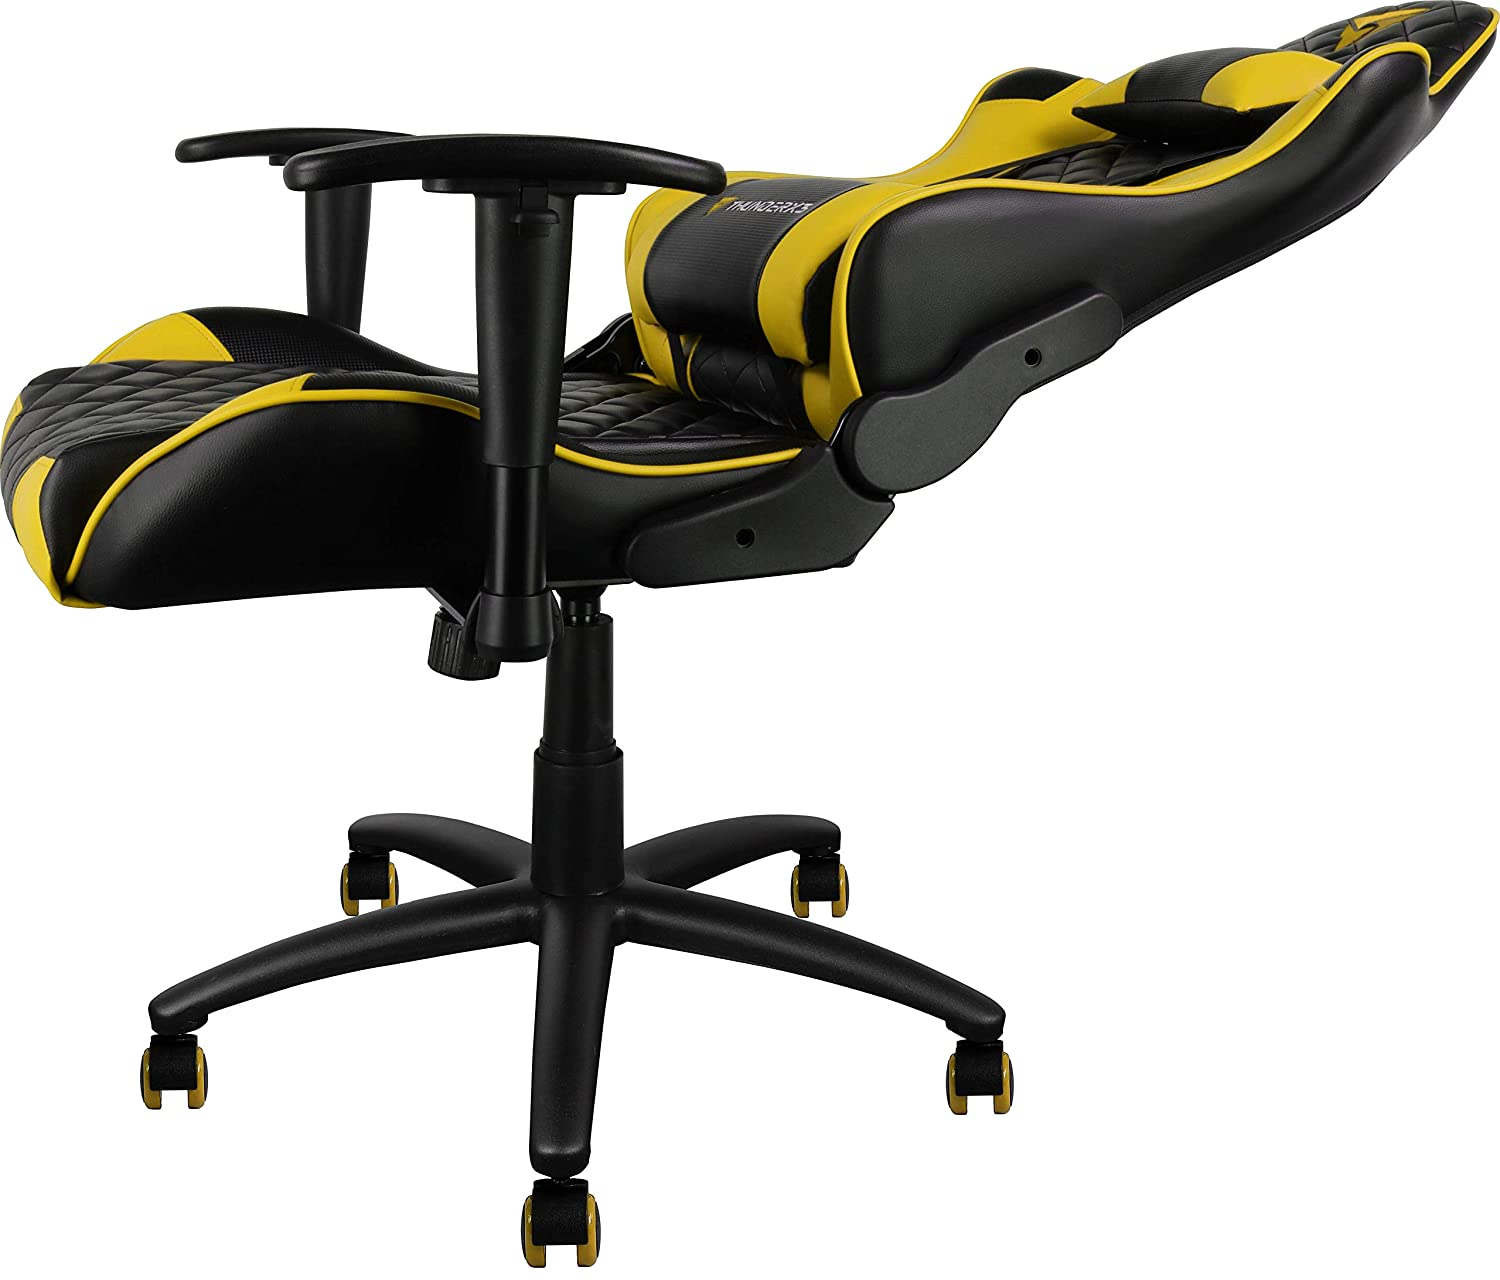 ThunderX3 Spain TGC12BY Sillas Gaming Profesional, Amarillo: Amazon.es: Hogar